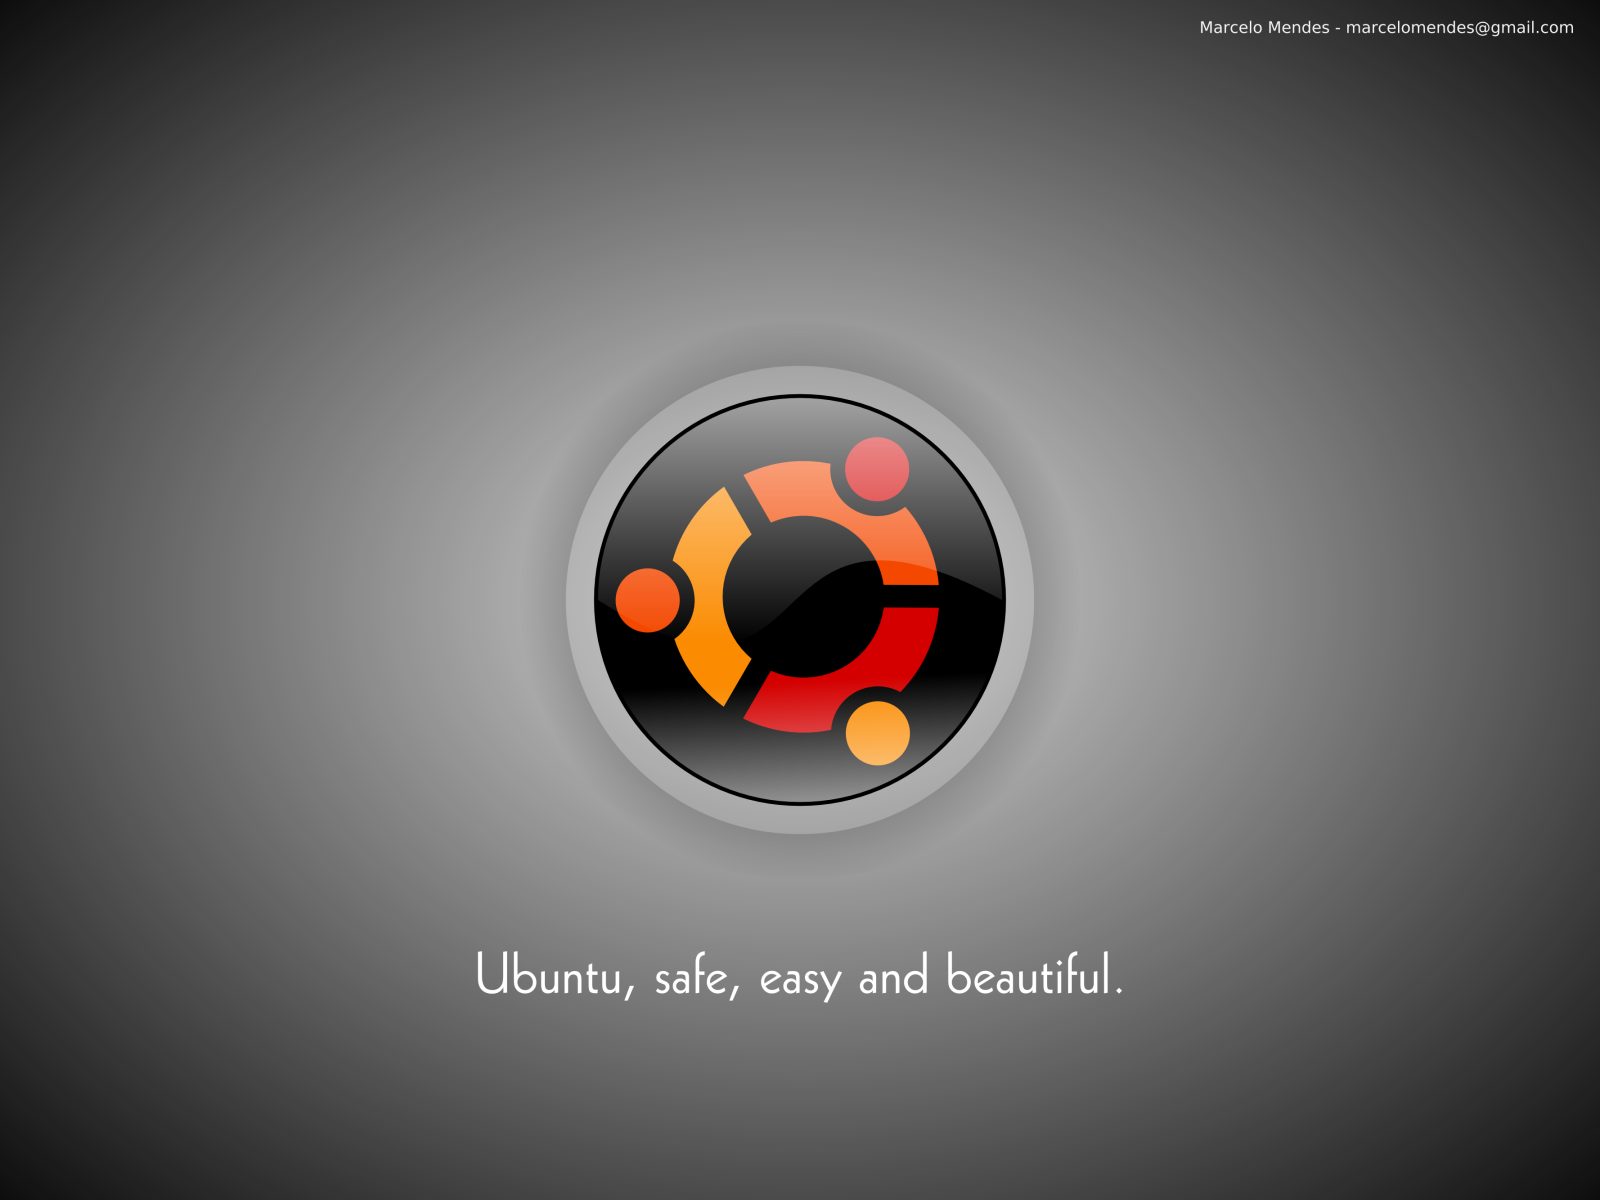 ubuntu wallpapers hd ubuntu wallpapers hd ubuntu wallpapers hd ubuntu 1600x1200